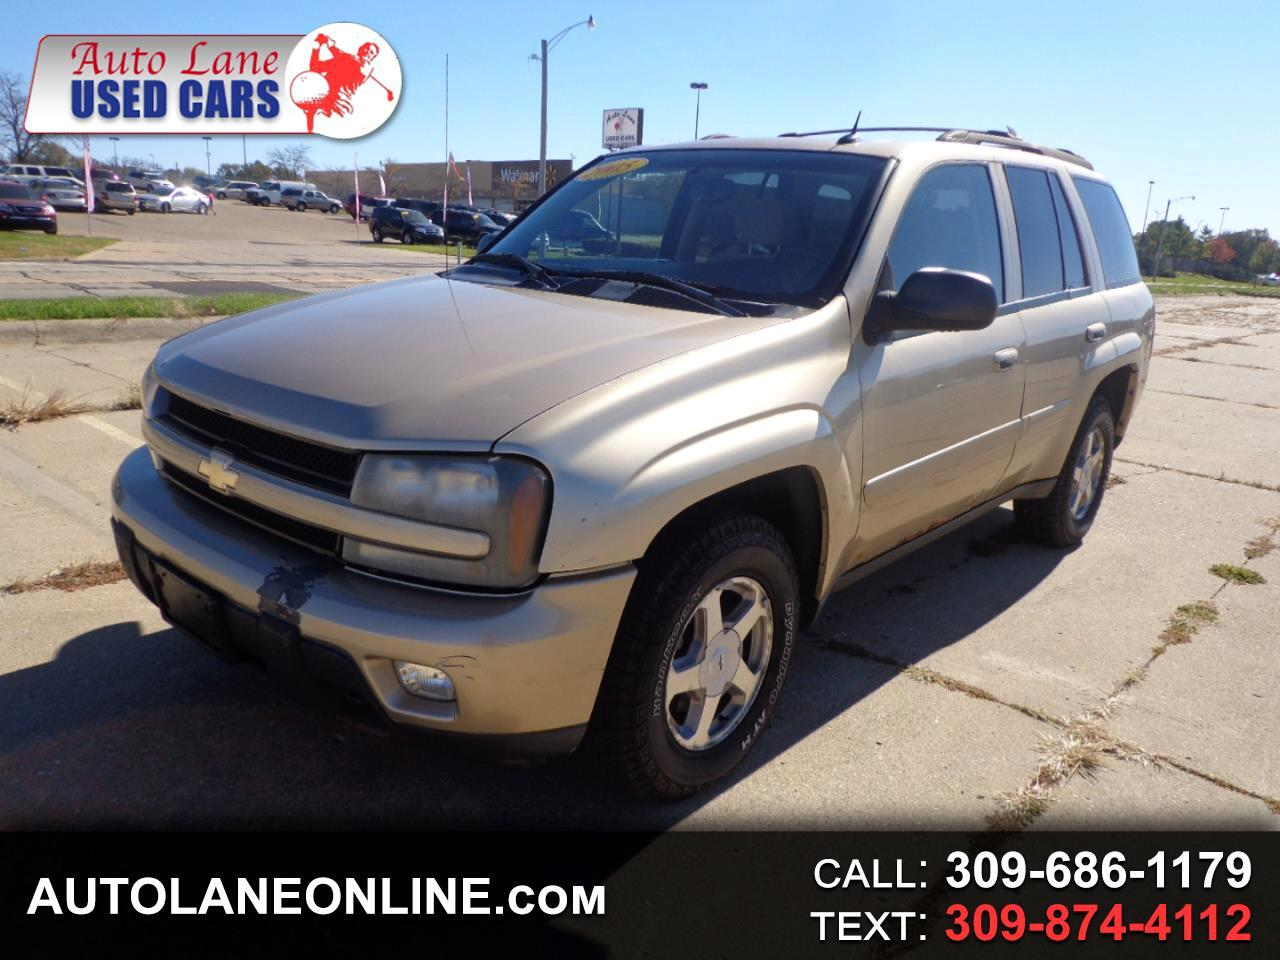 buy here pay here 2005 chevrolet trailblazer 4dr 4wd lt for sale in peoria il 61604 auto lane. Black Bedroom Furniture Sets. Home Design Ideas